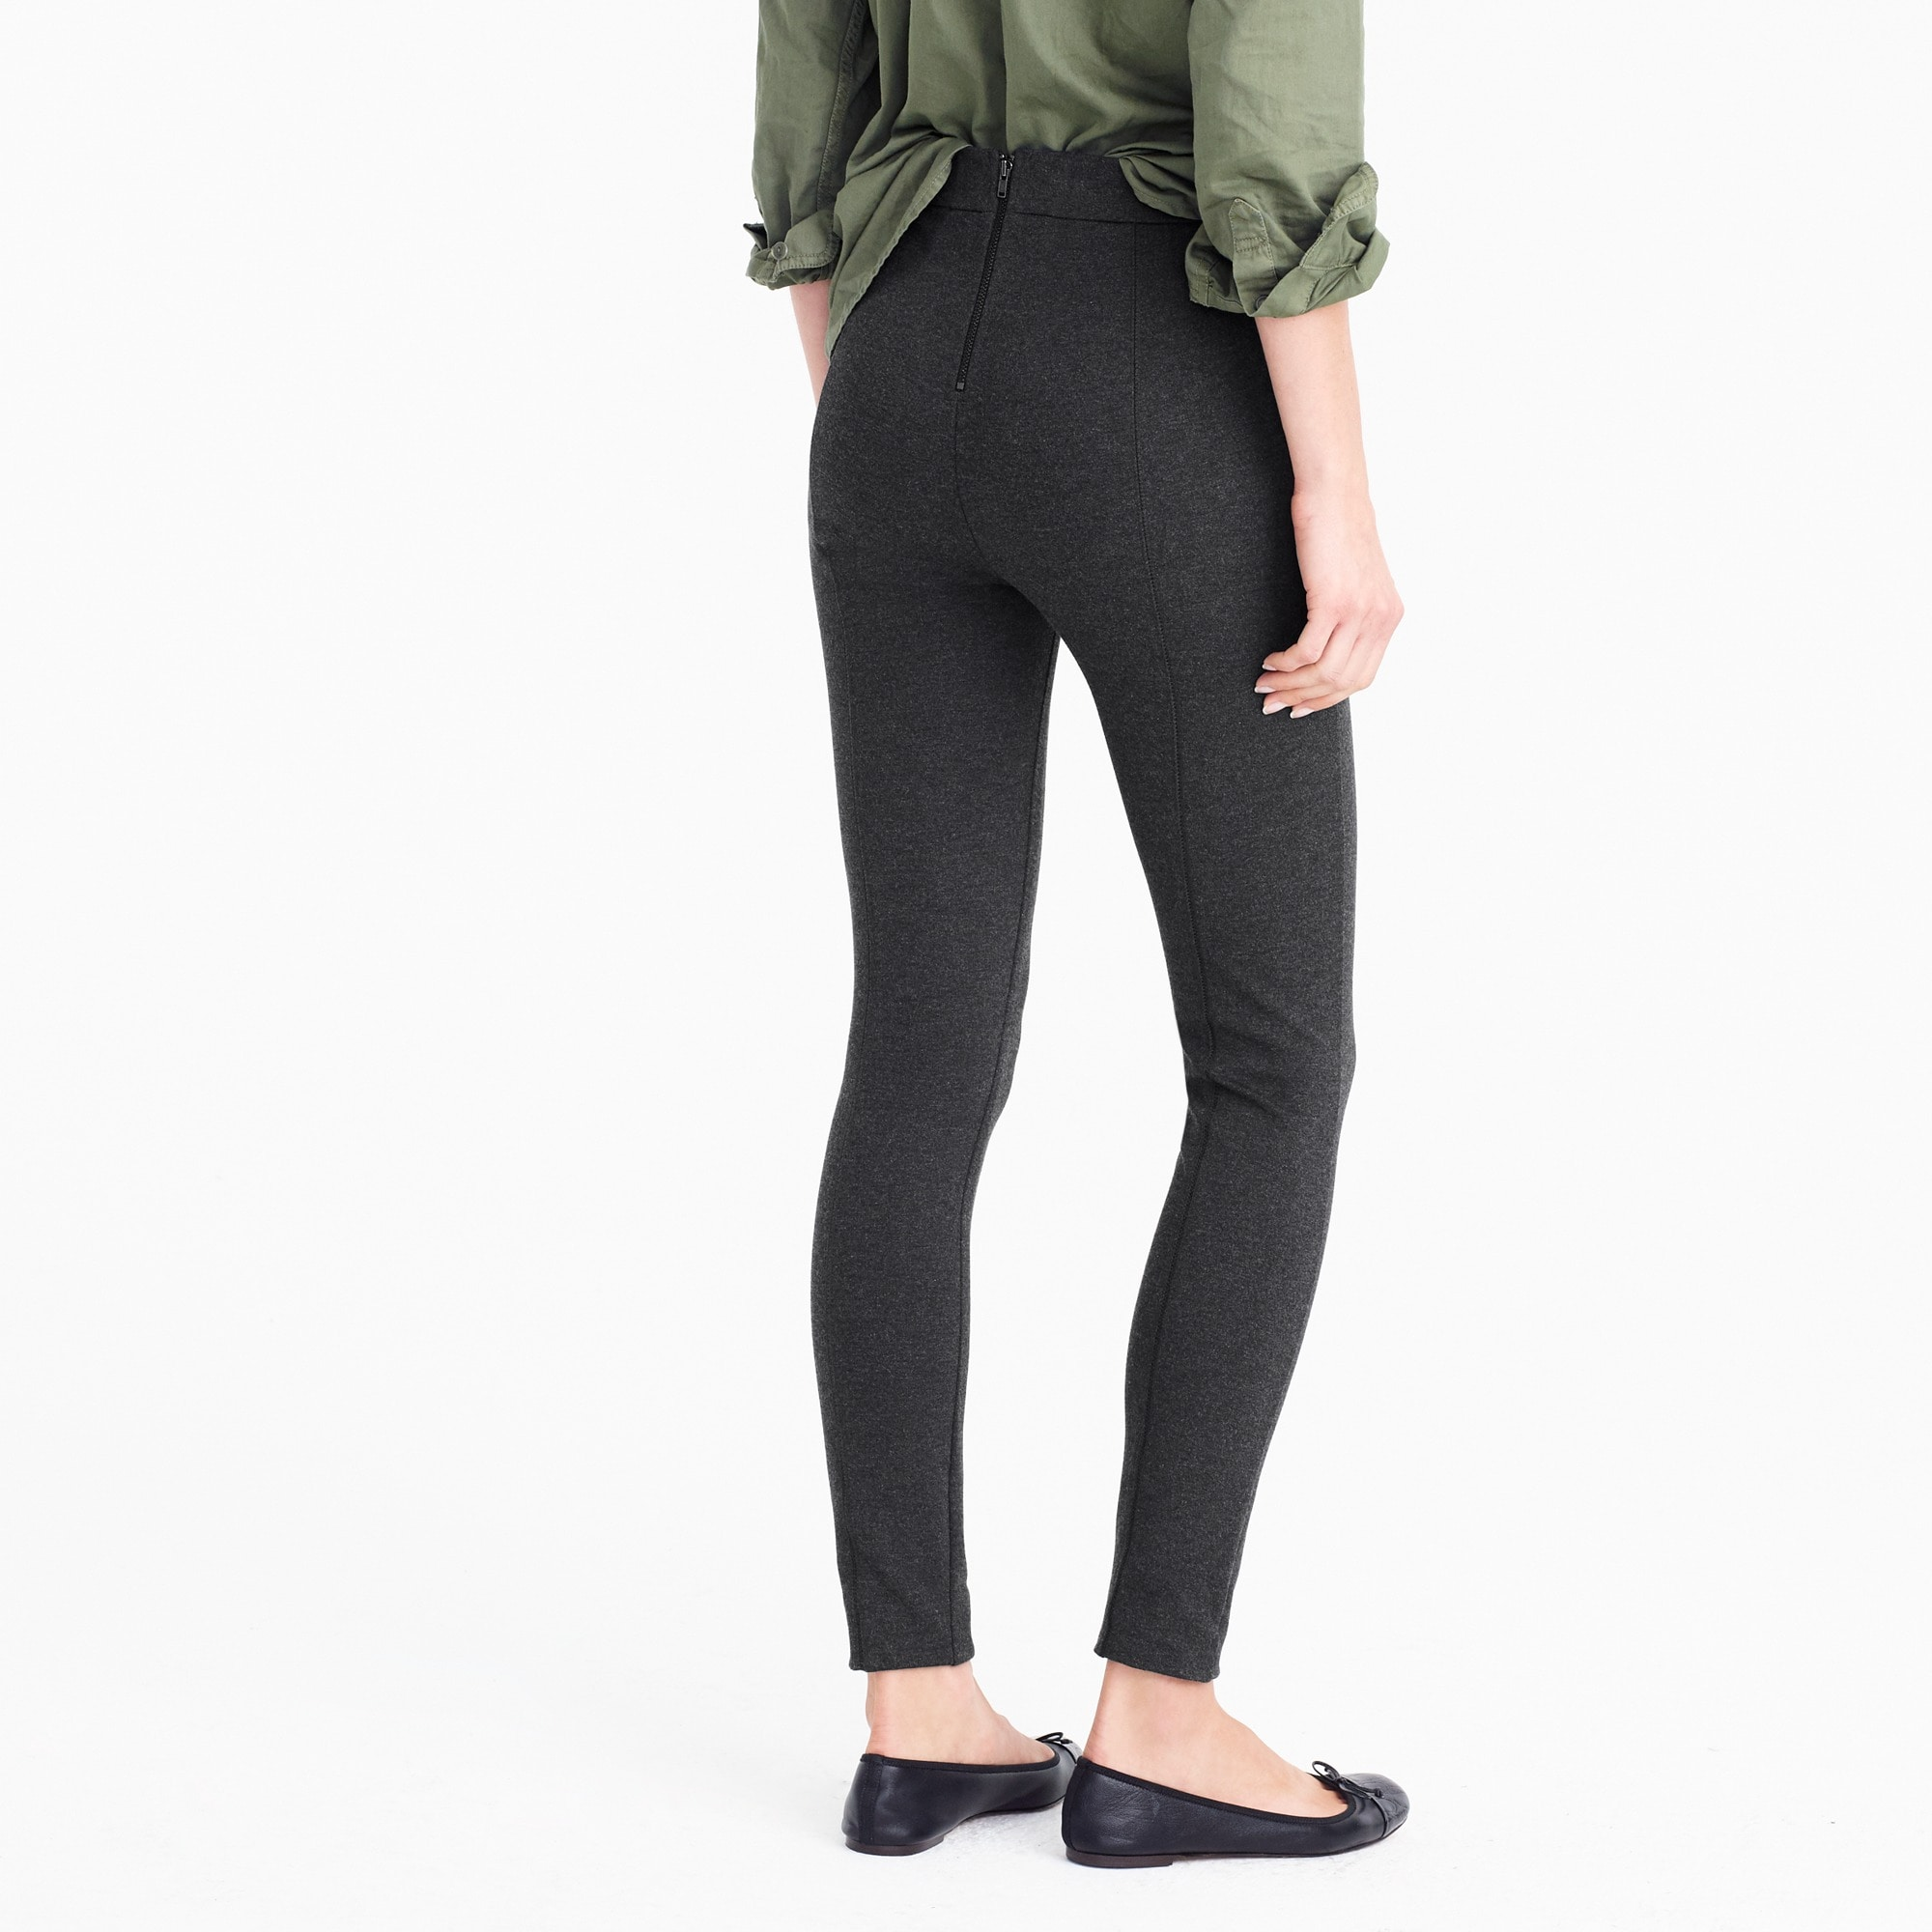 Image 4 for Any day pant in stretch ponte